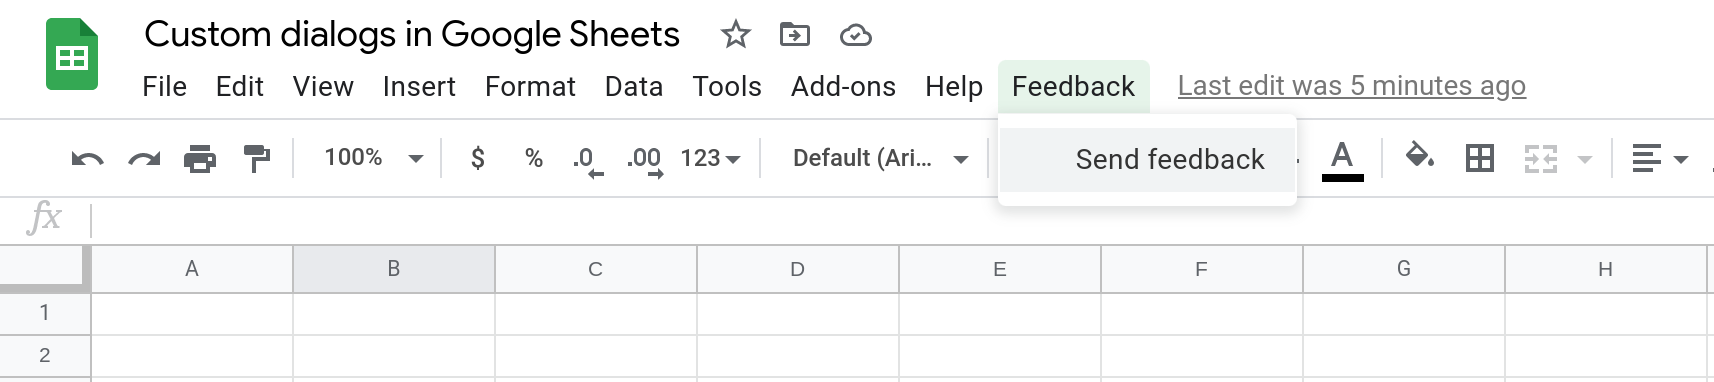 Screenshot of a Google Sheets spreadsheet that shows a custom dialog called Feedback. The menu is open and a menu item called Send feedback is selected.